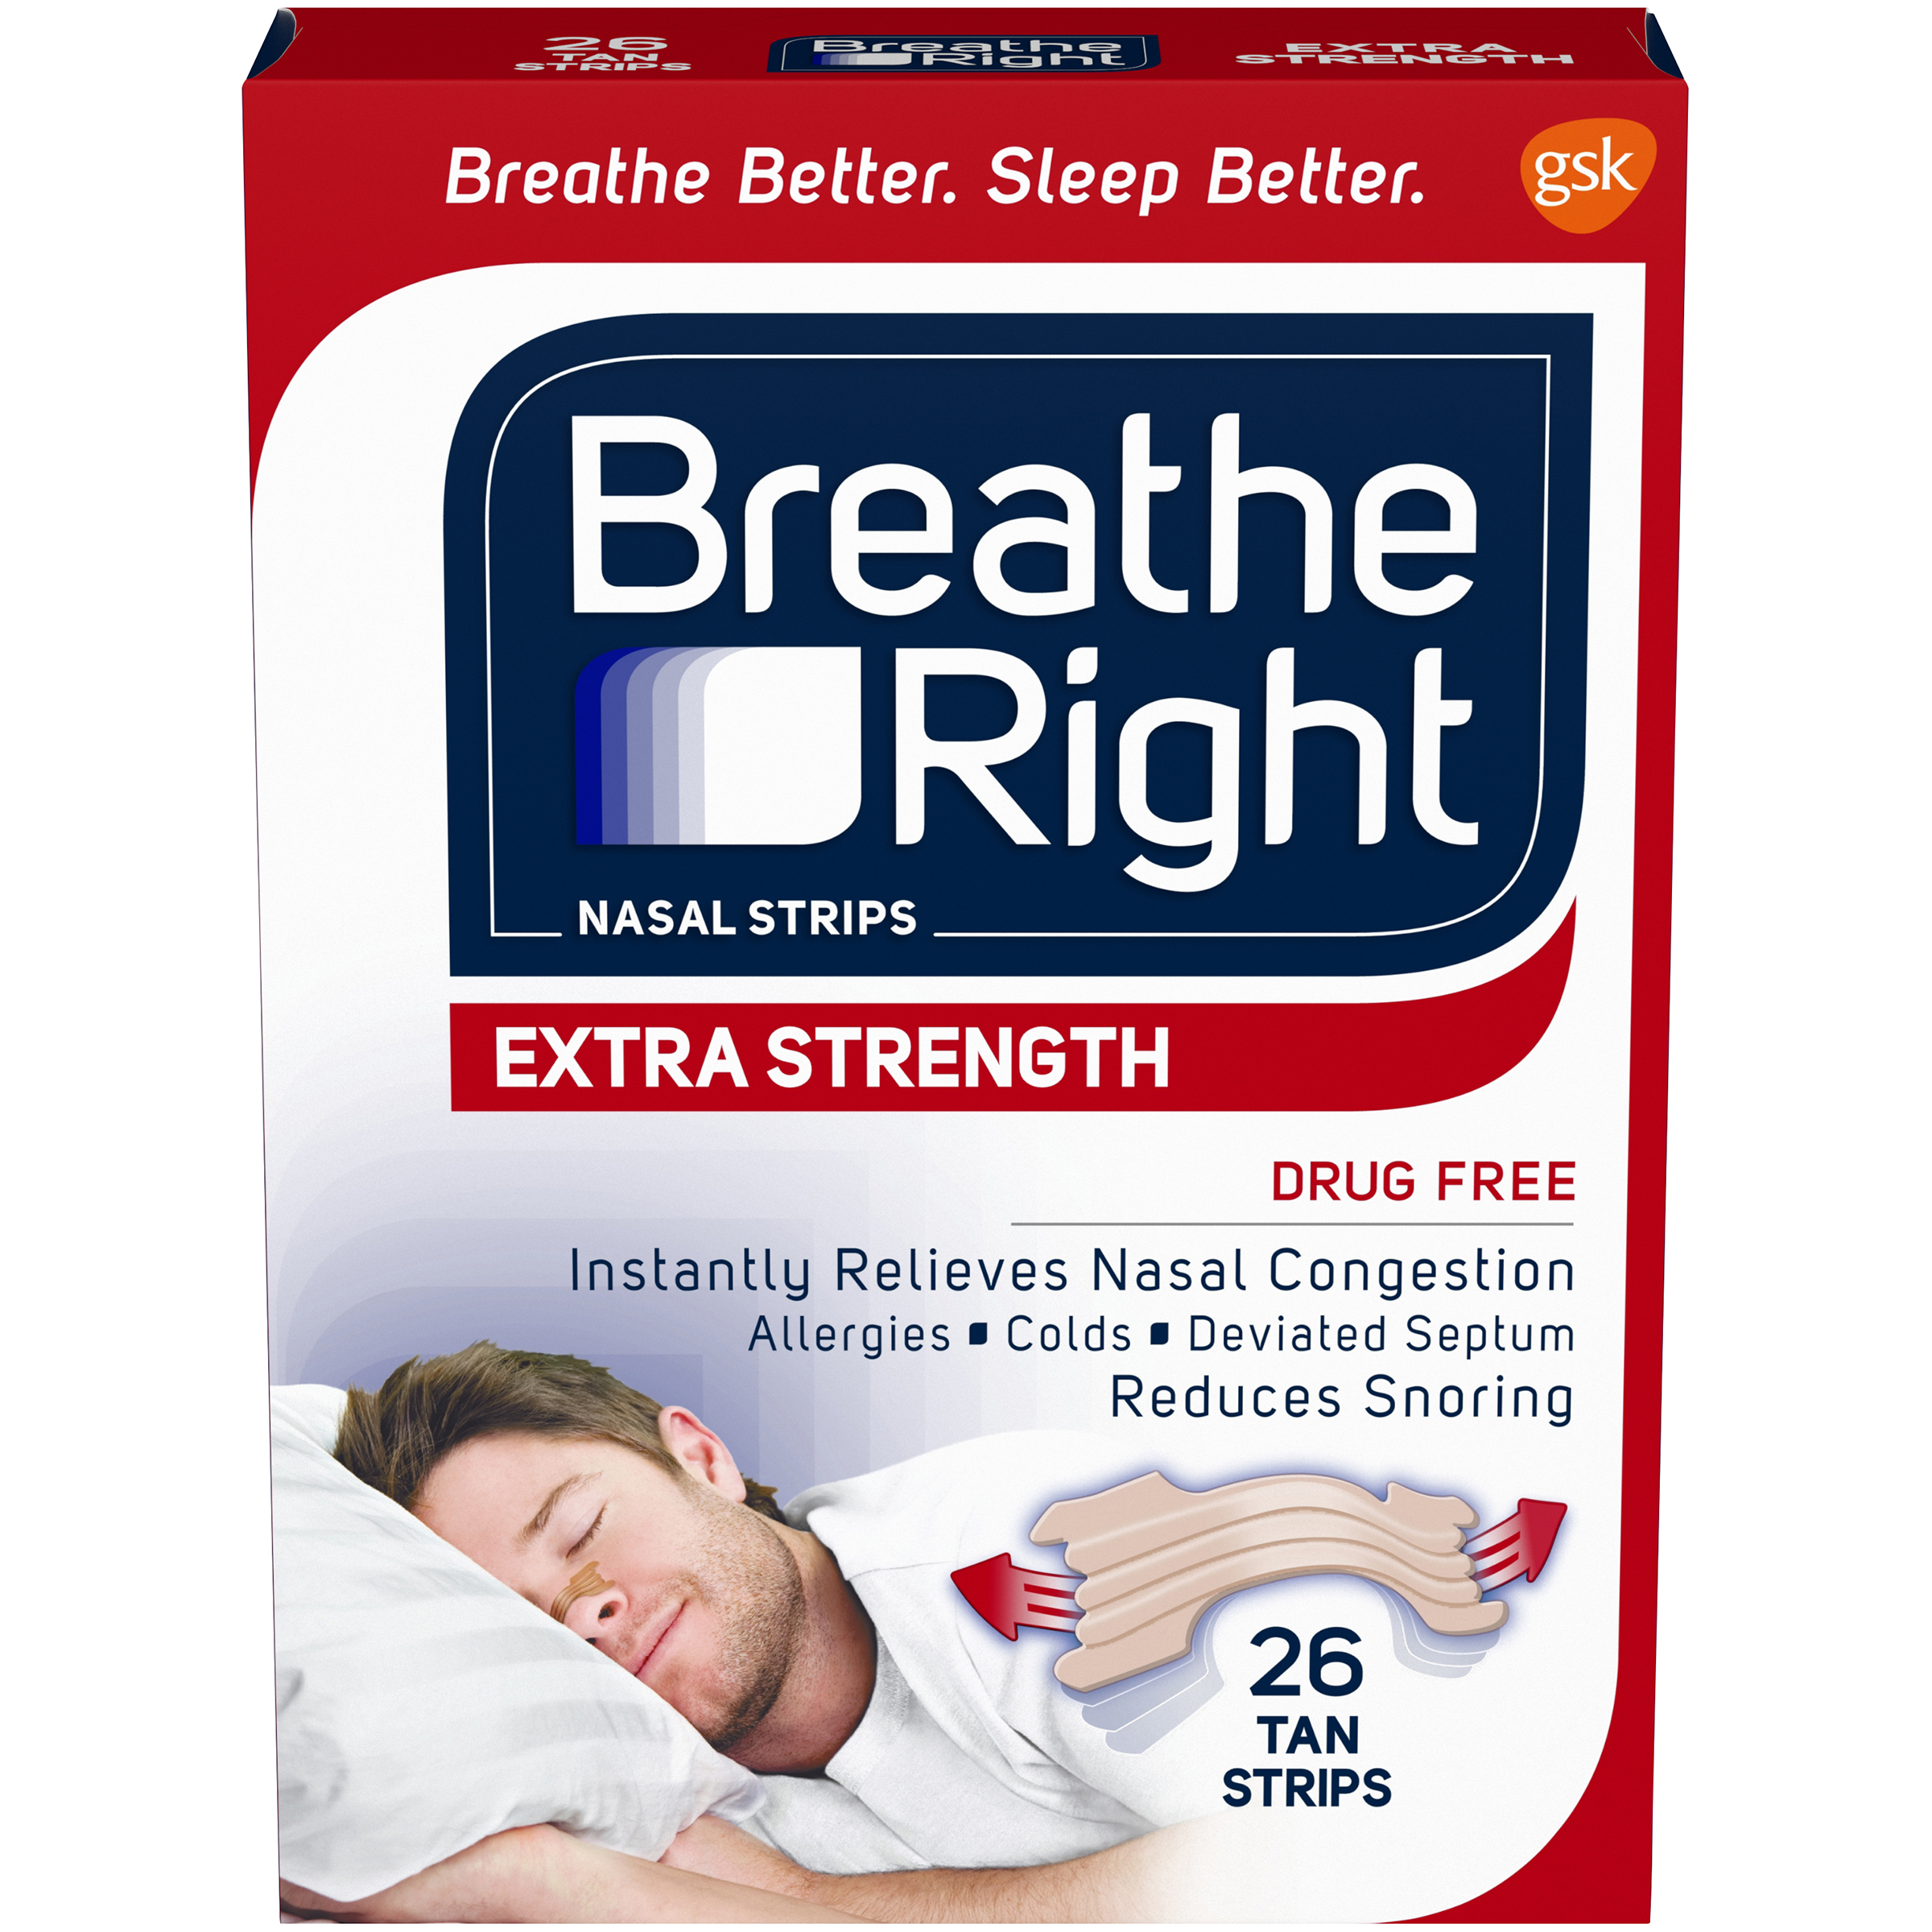 Image of BREATHE RIGHT Nasal Strips, Extra 26 strips, Size: 26 ct.